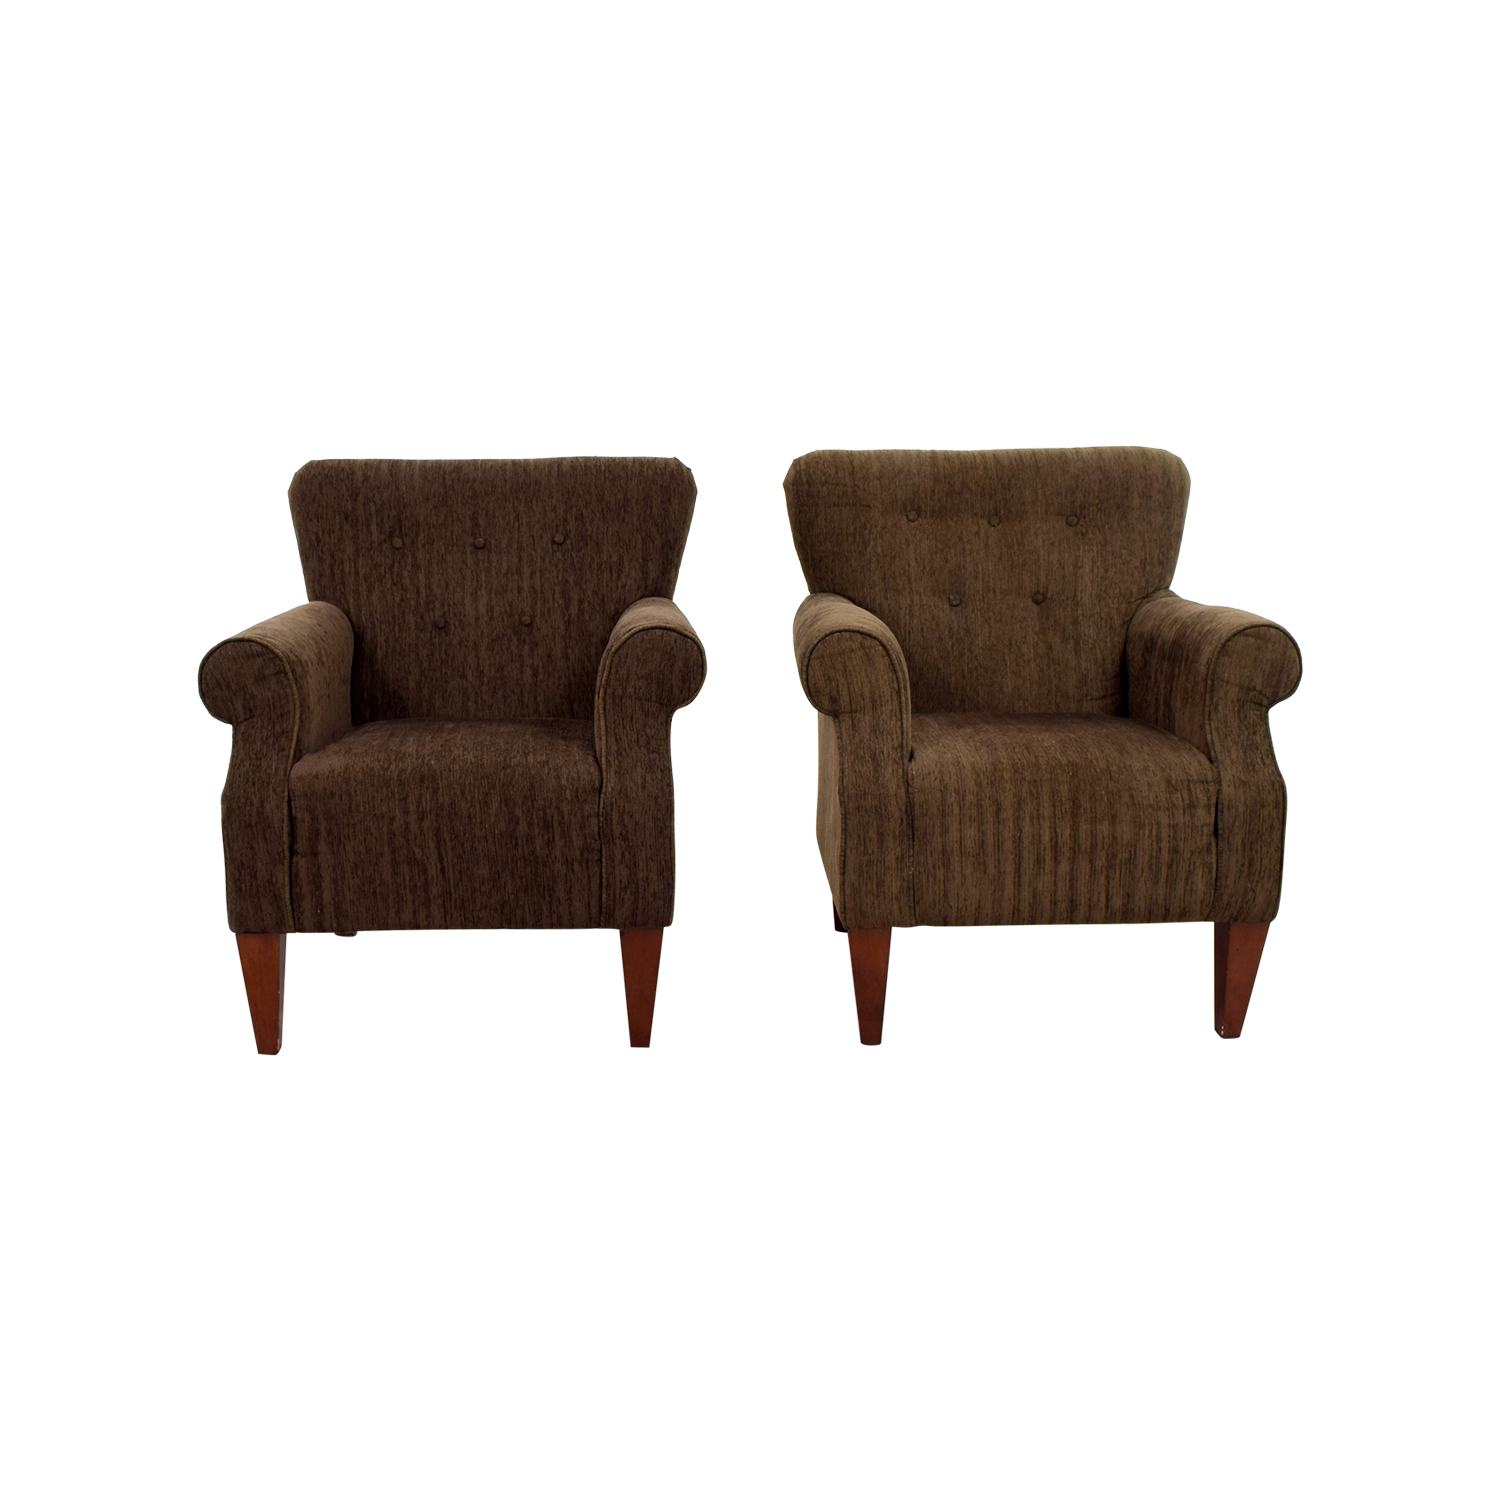 Emerald Home Furnishings Upholstered Brown Chairs / Chairs